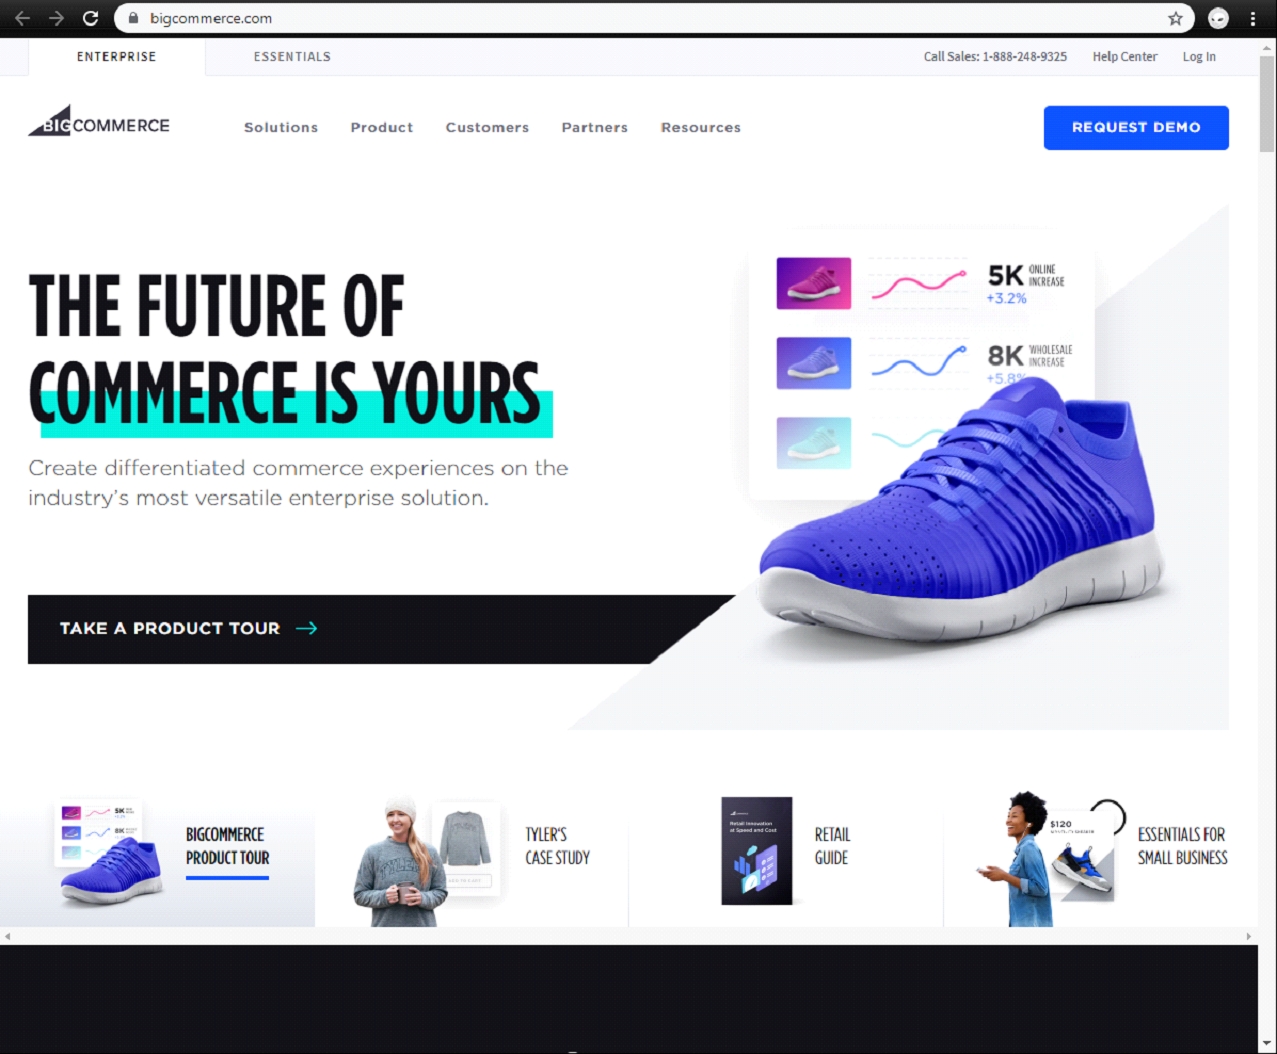 bigcommerce landing page